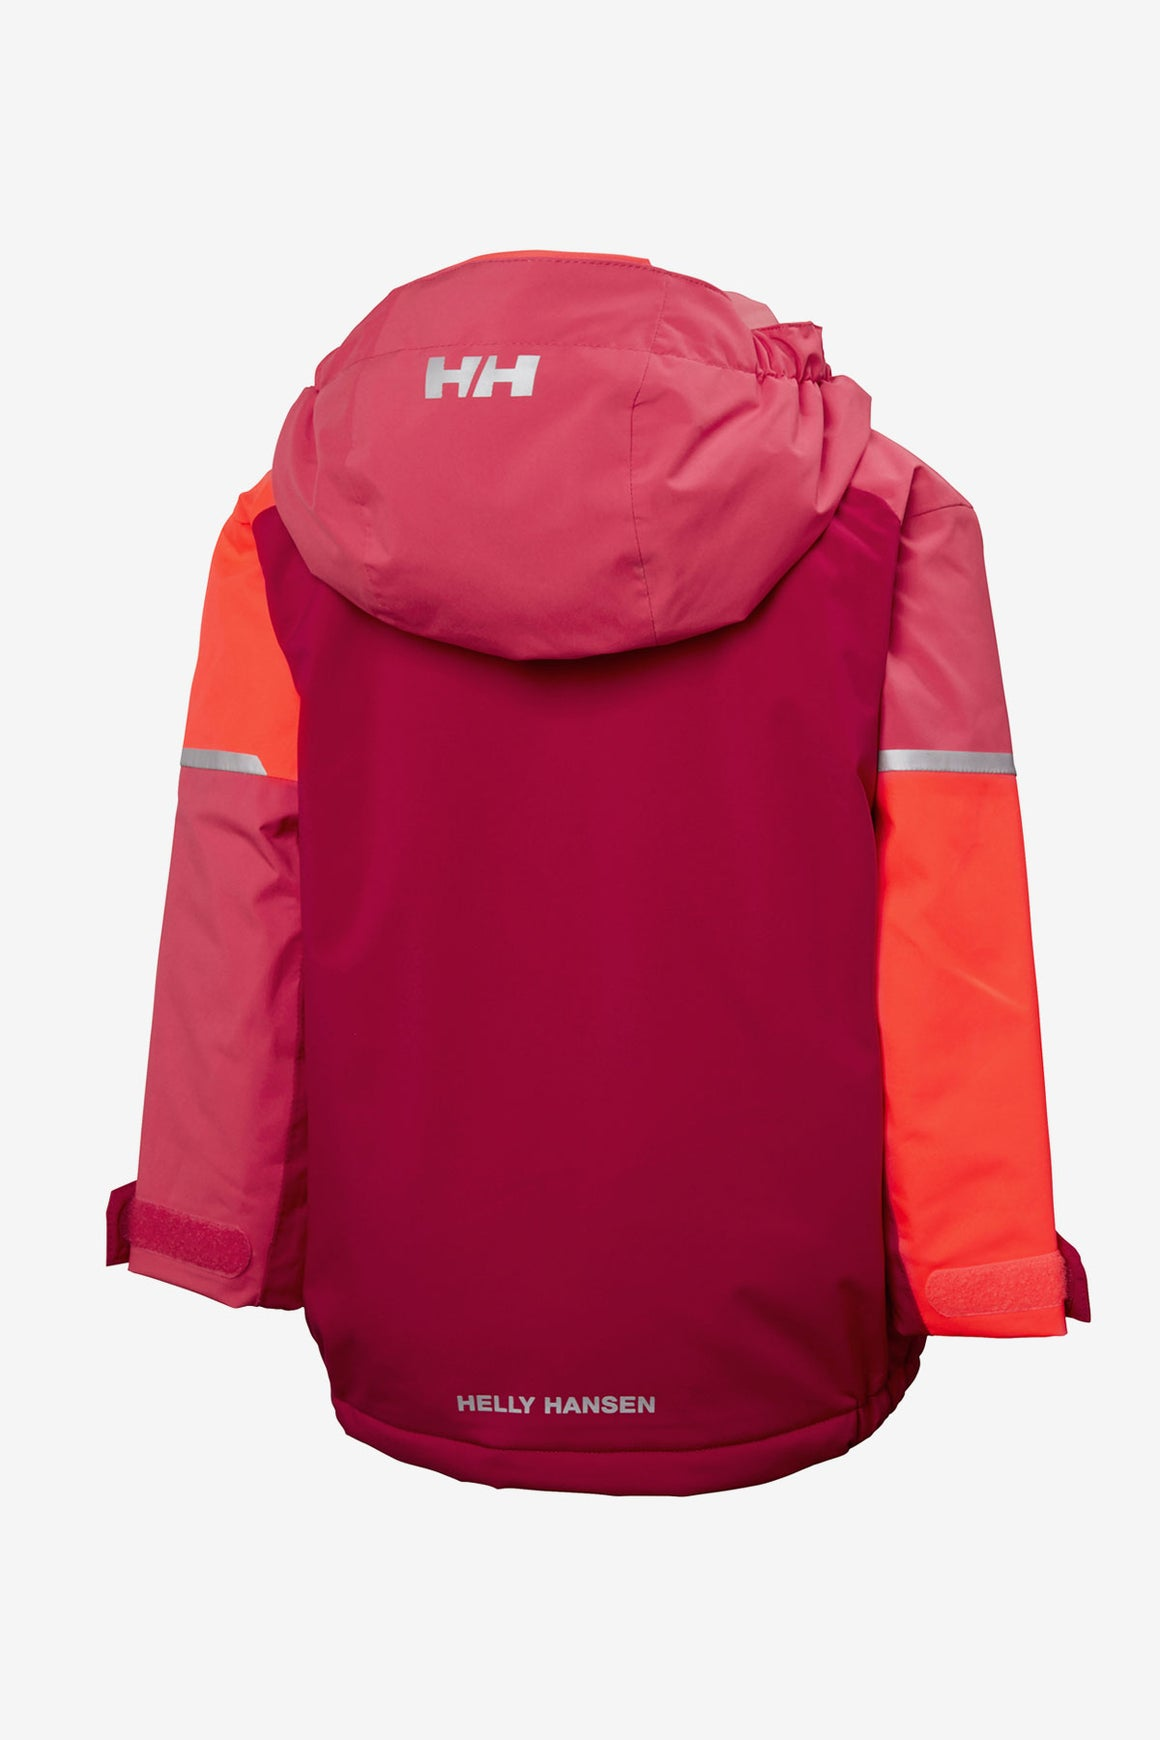 Helly Hansen Rider Ski Jacket - Goji Berry